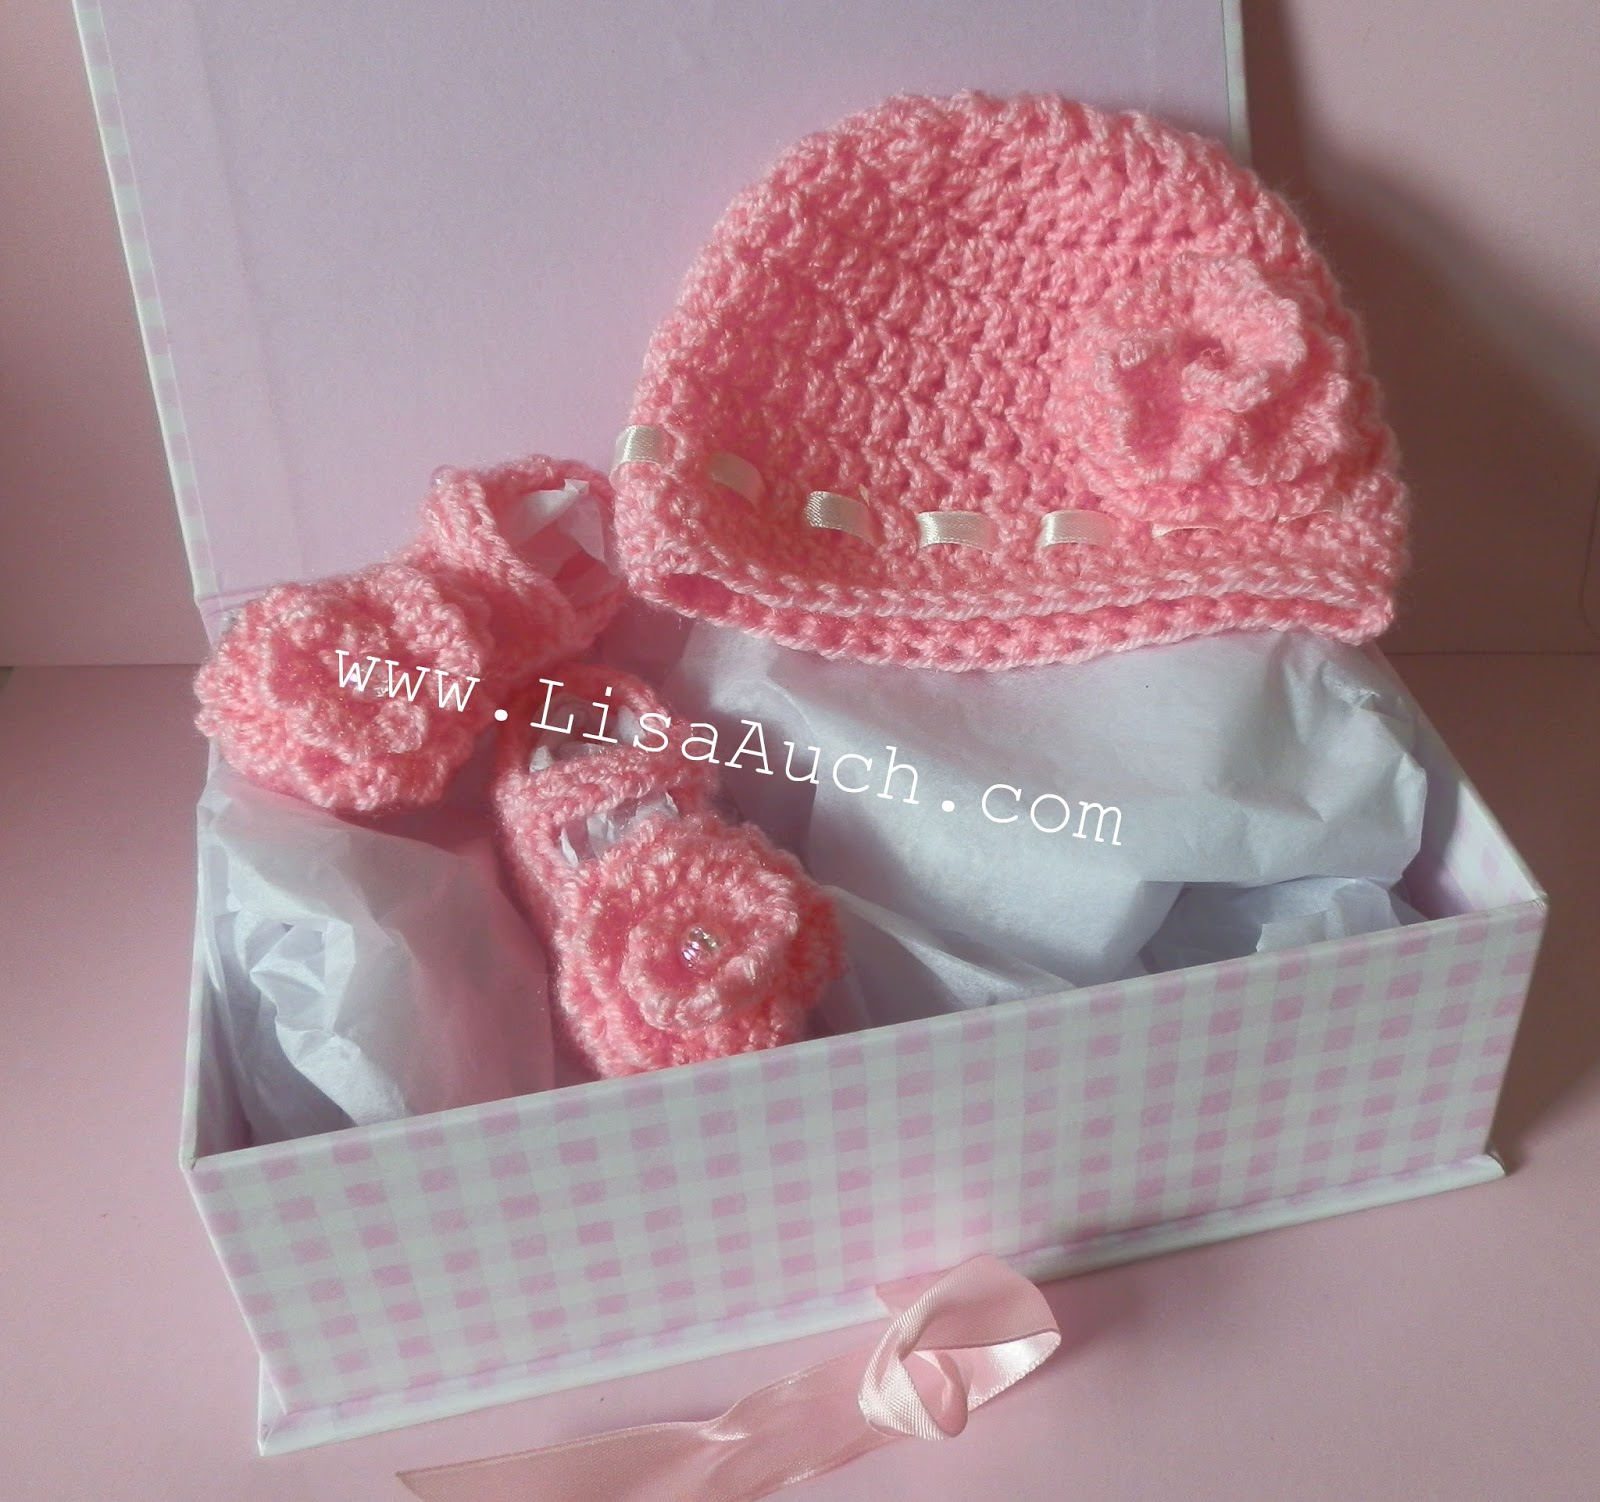 Free Crochet Patterns For Babies : FREE CROCHET BABY BUNTING SET PATTERN - Crochet and ...